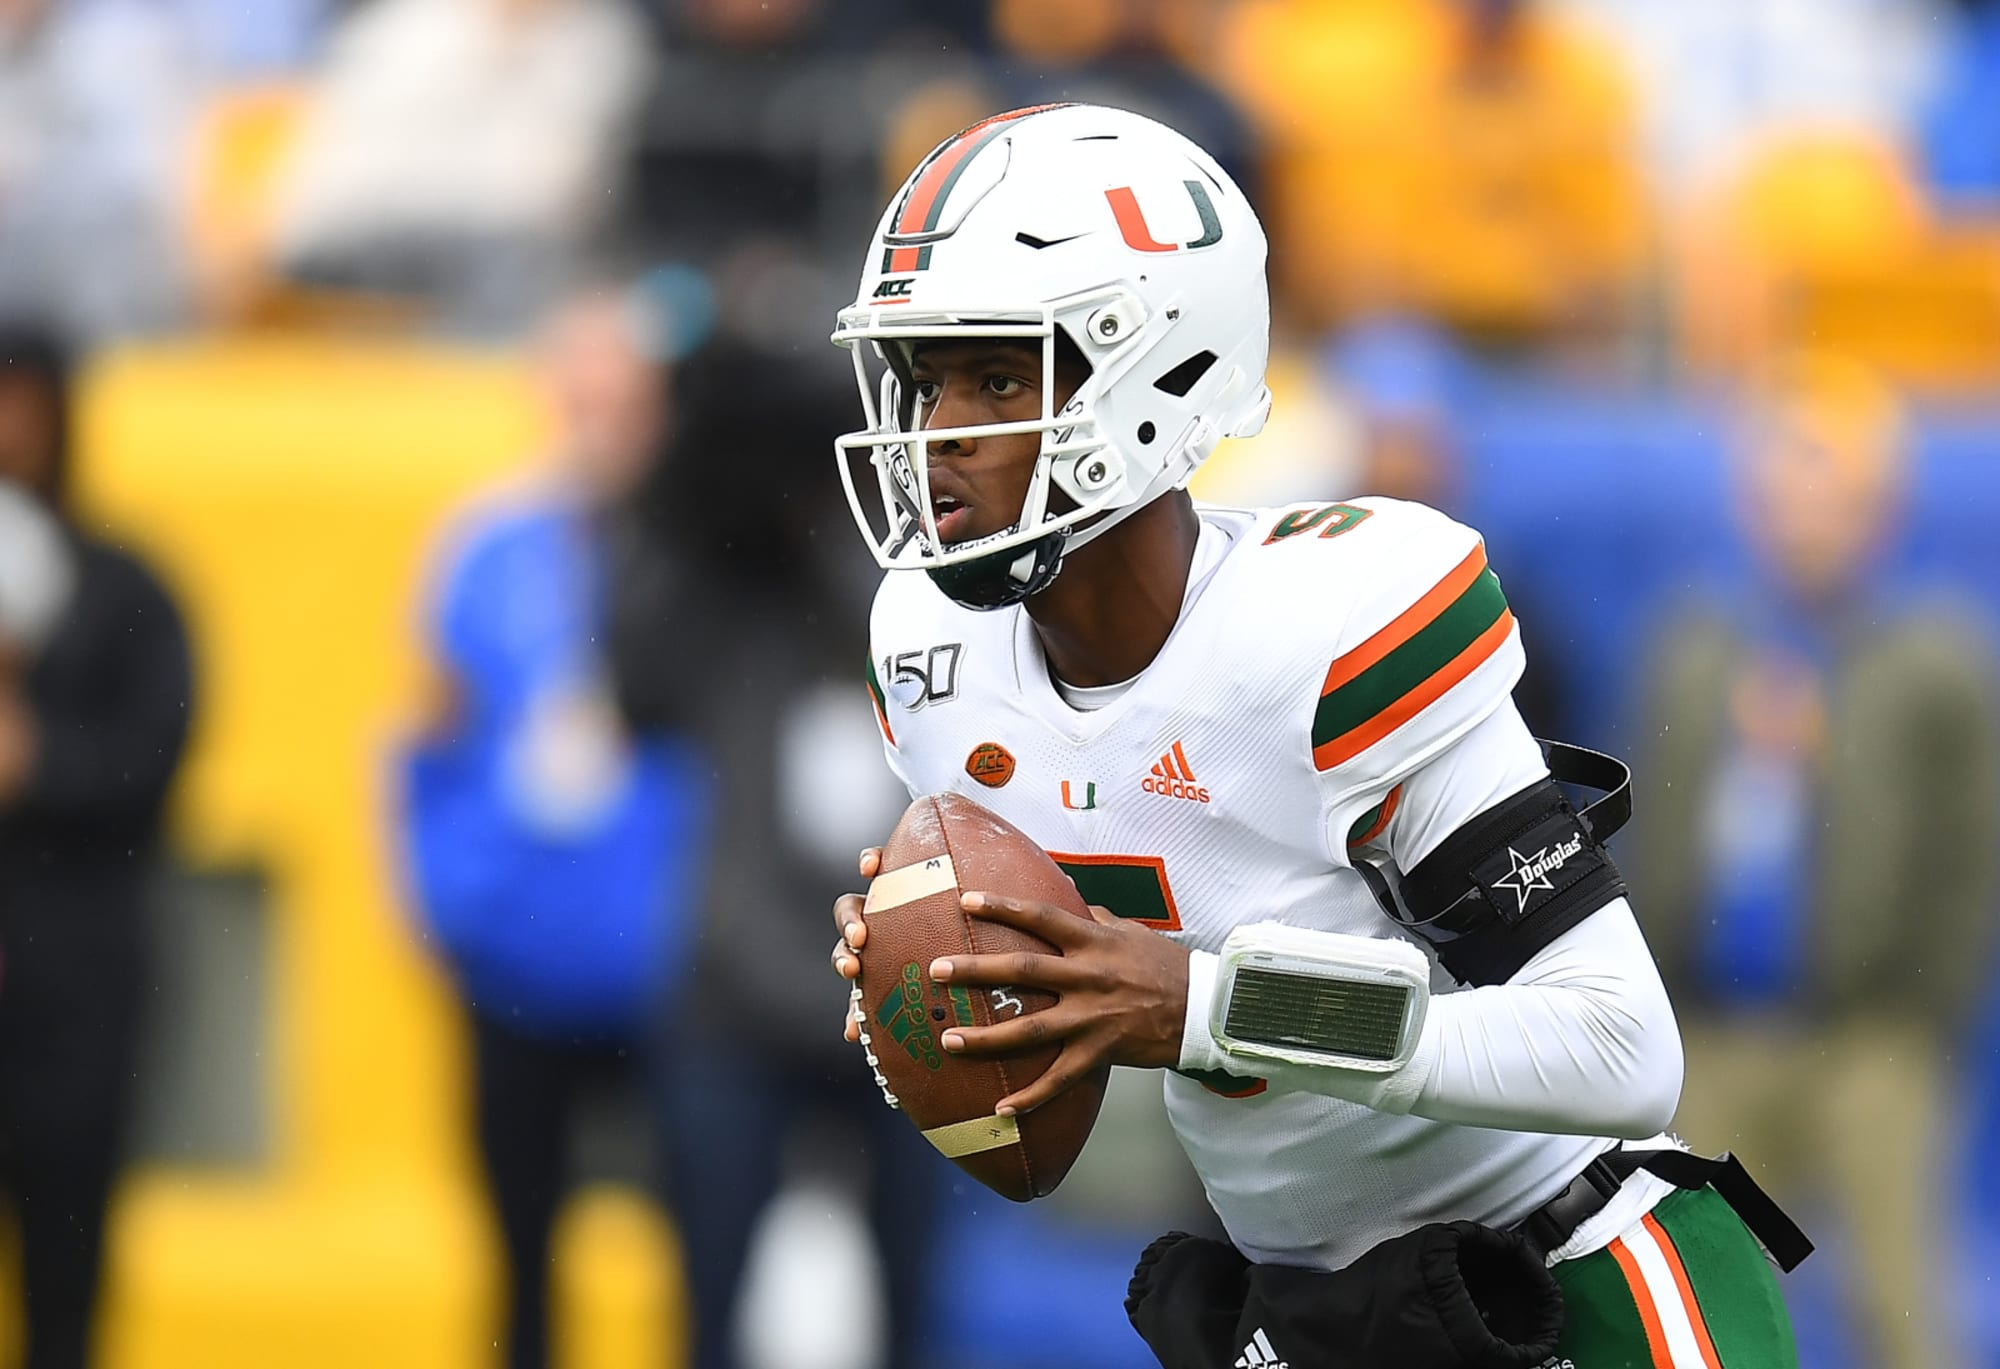 Miami Football 2021 recruiting class one of seven Power 5 without QB